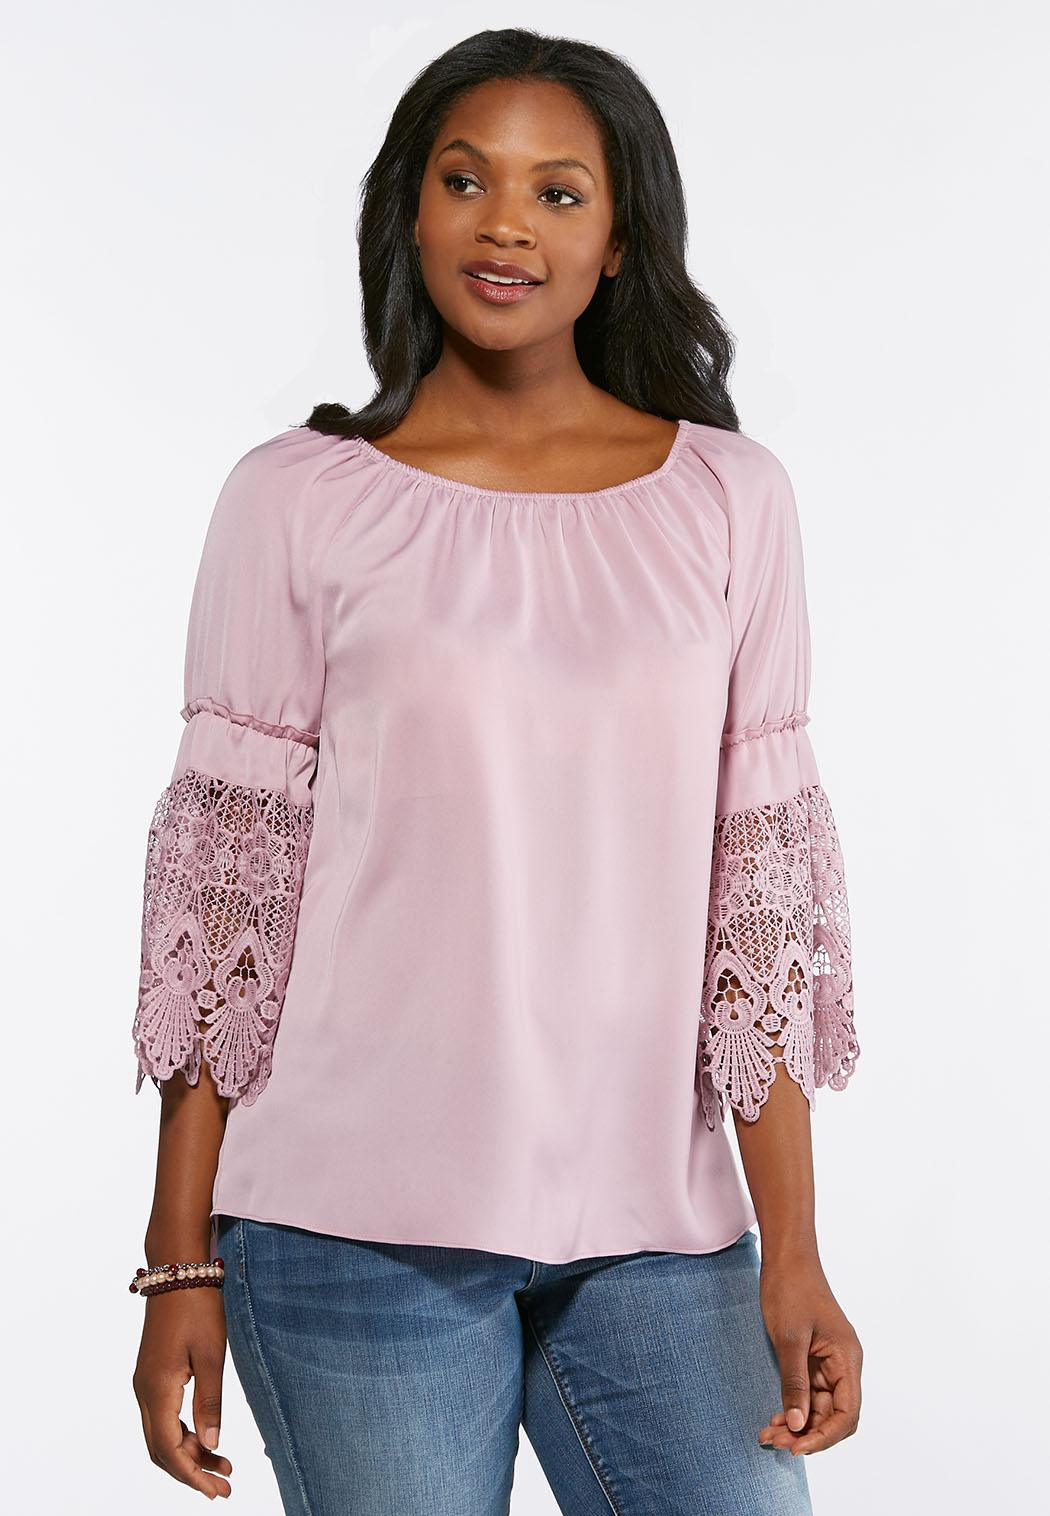 5461782046eb9 Plus Size Lace Sleeve Convertible Poet Top Shirts   Blouses Cato ...